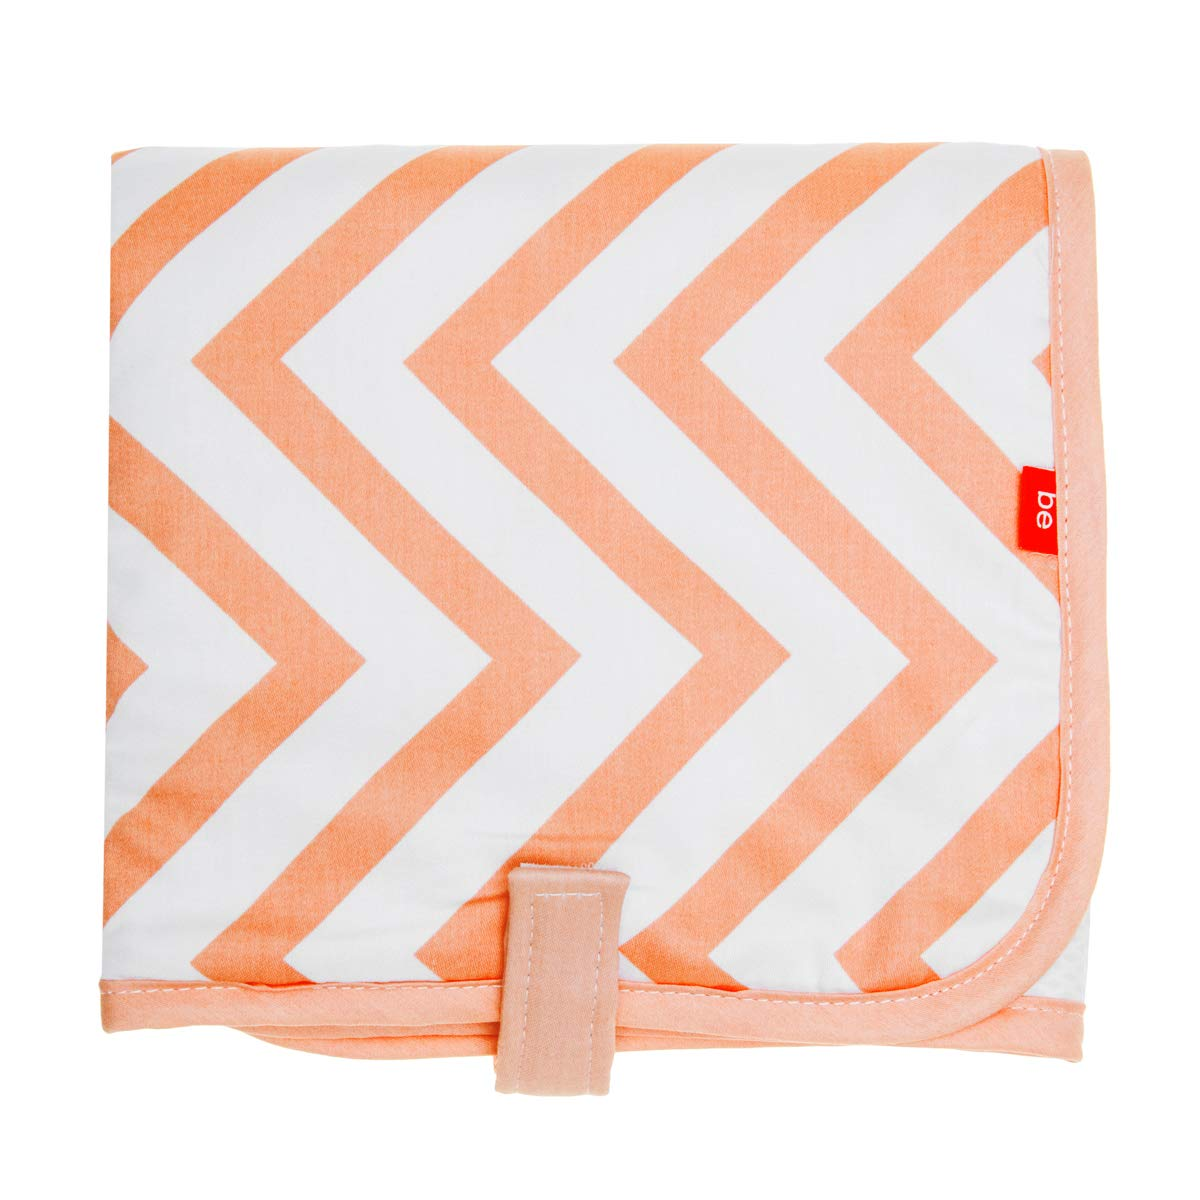 Nappy Changer 39X65 Cm Be Zigzag Coral Cambruss 42257